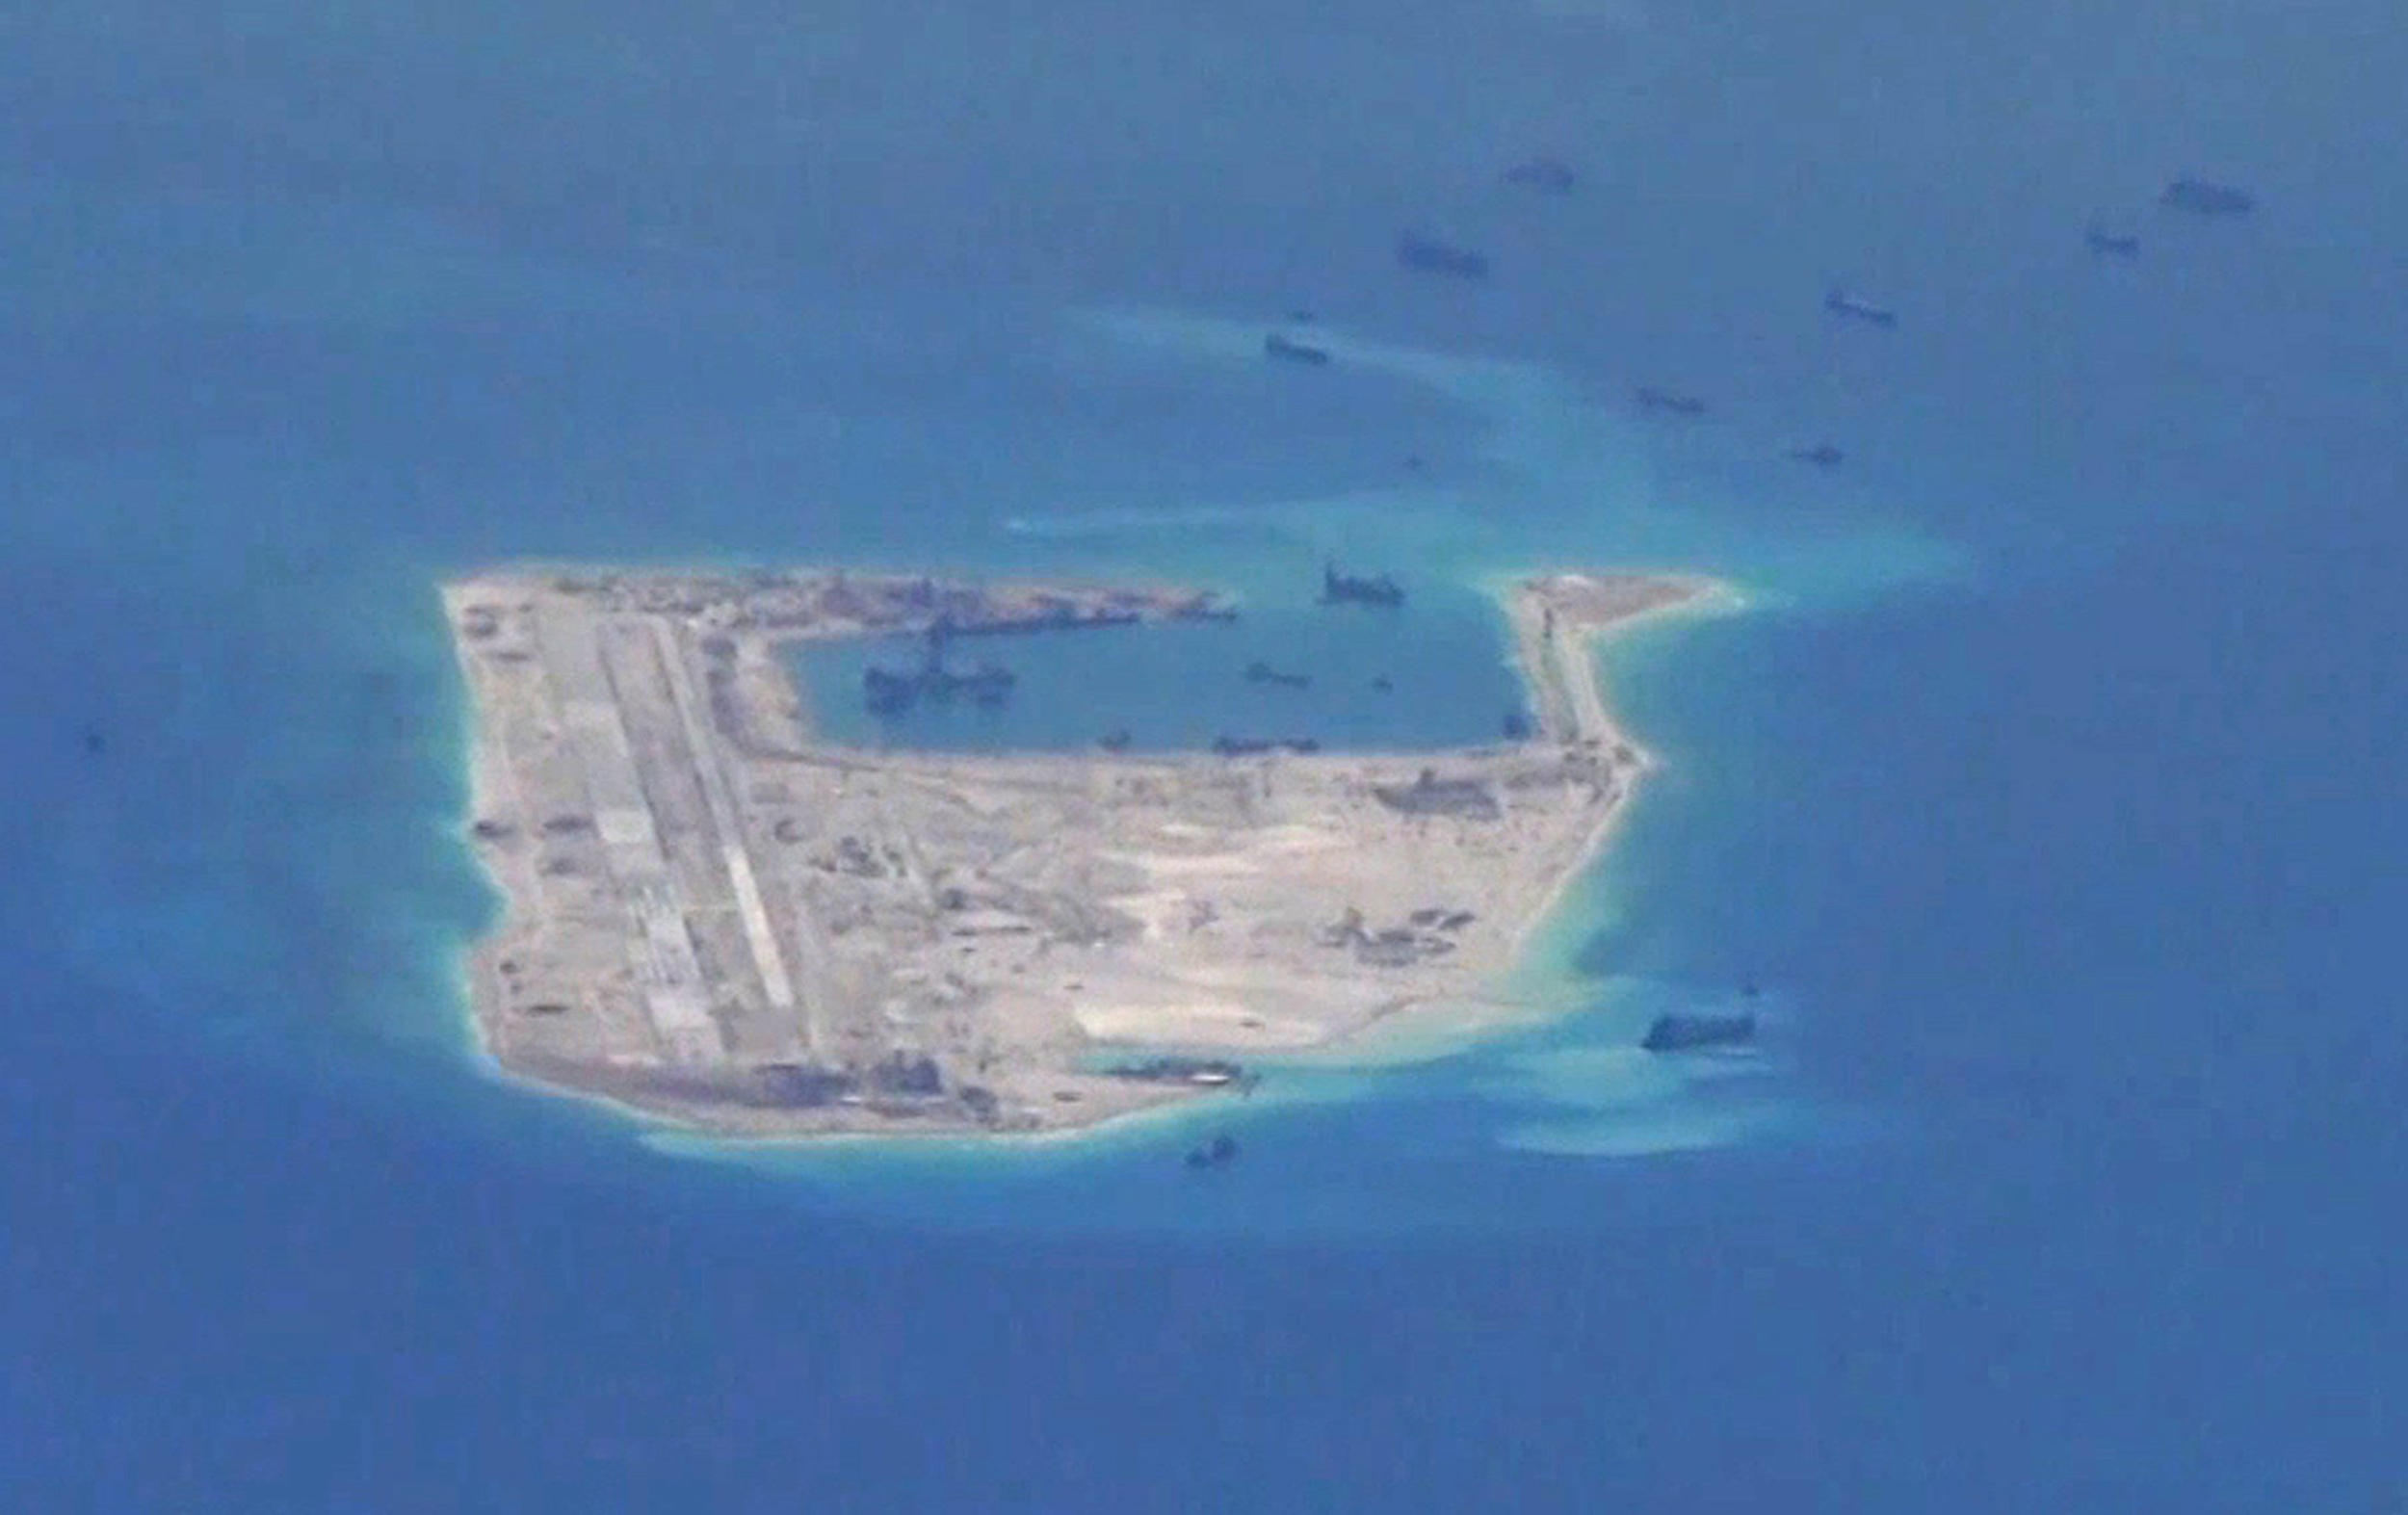 Image: Fiery Cross Reef in the Disputed Spratly Islands